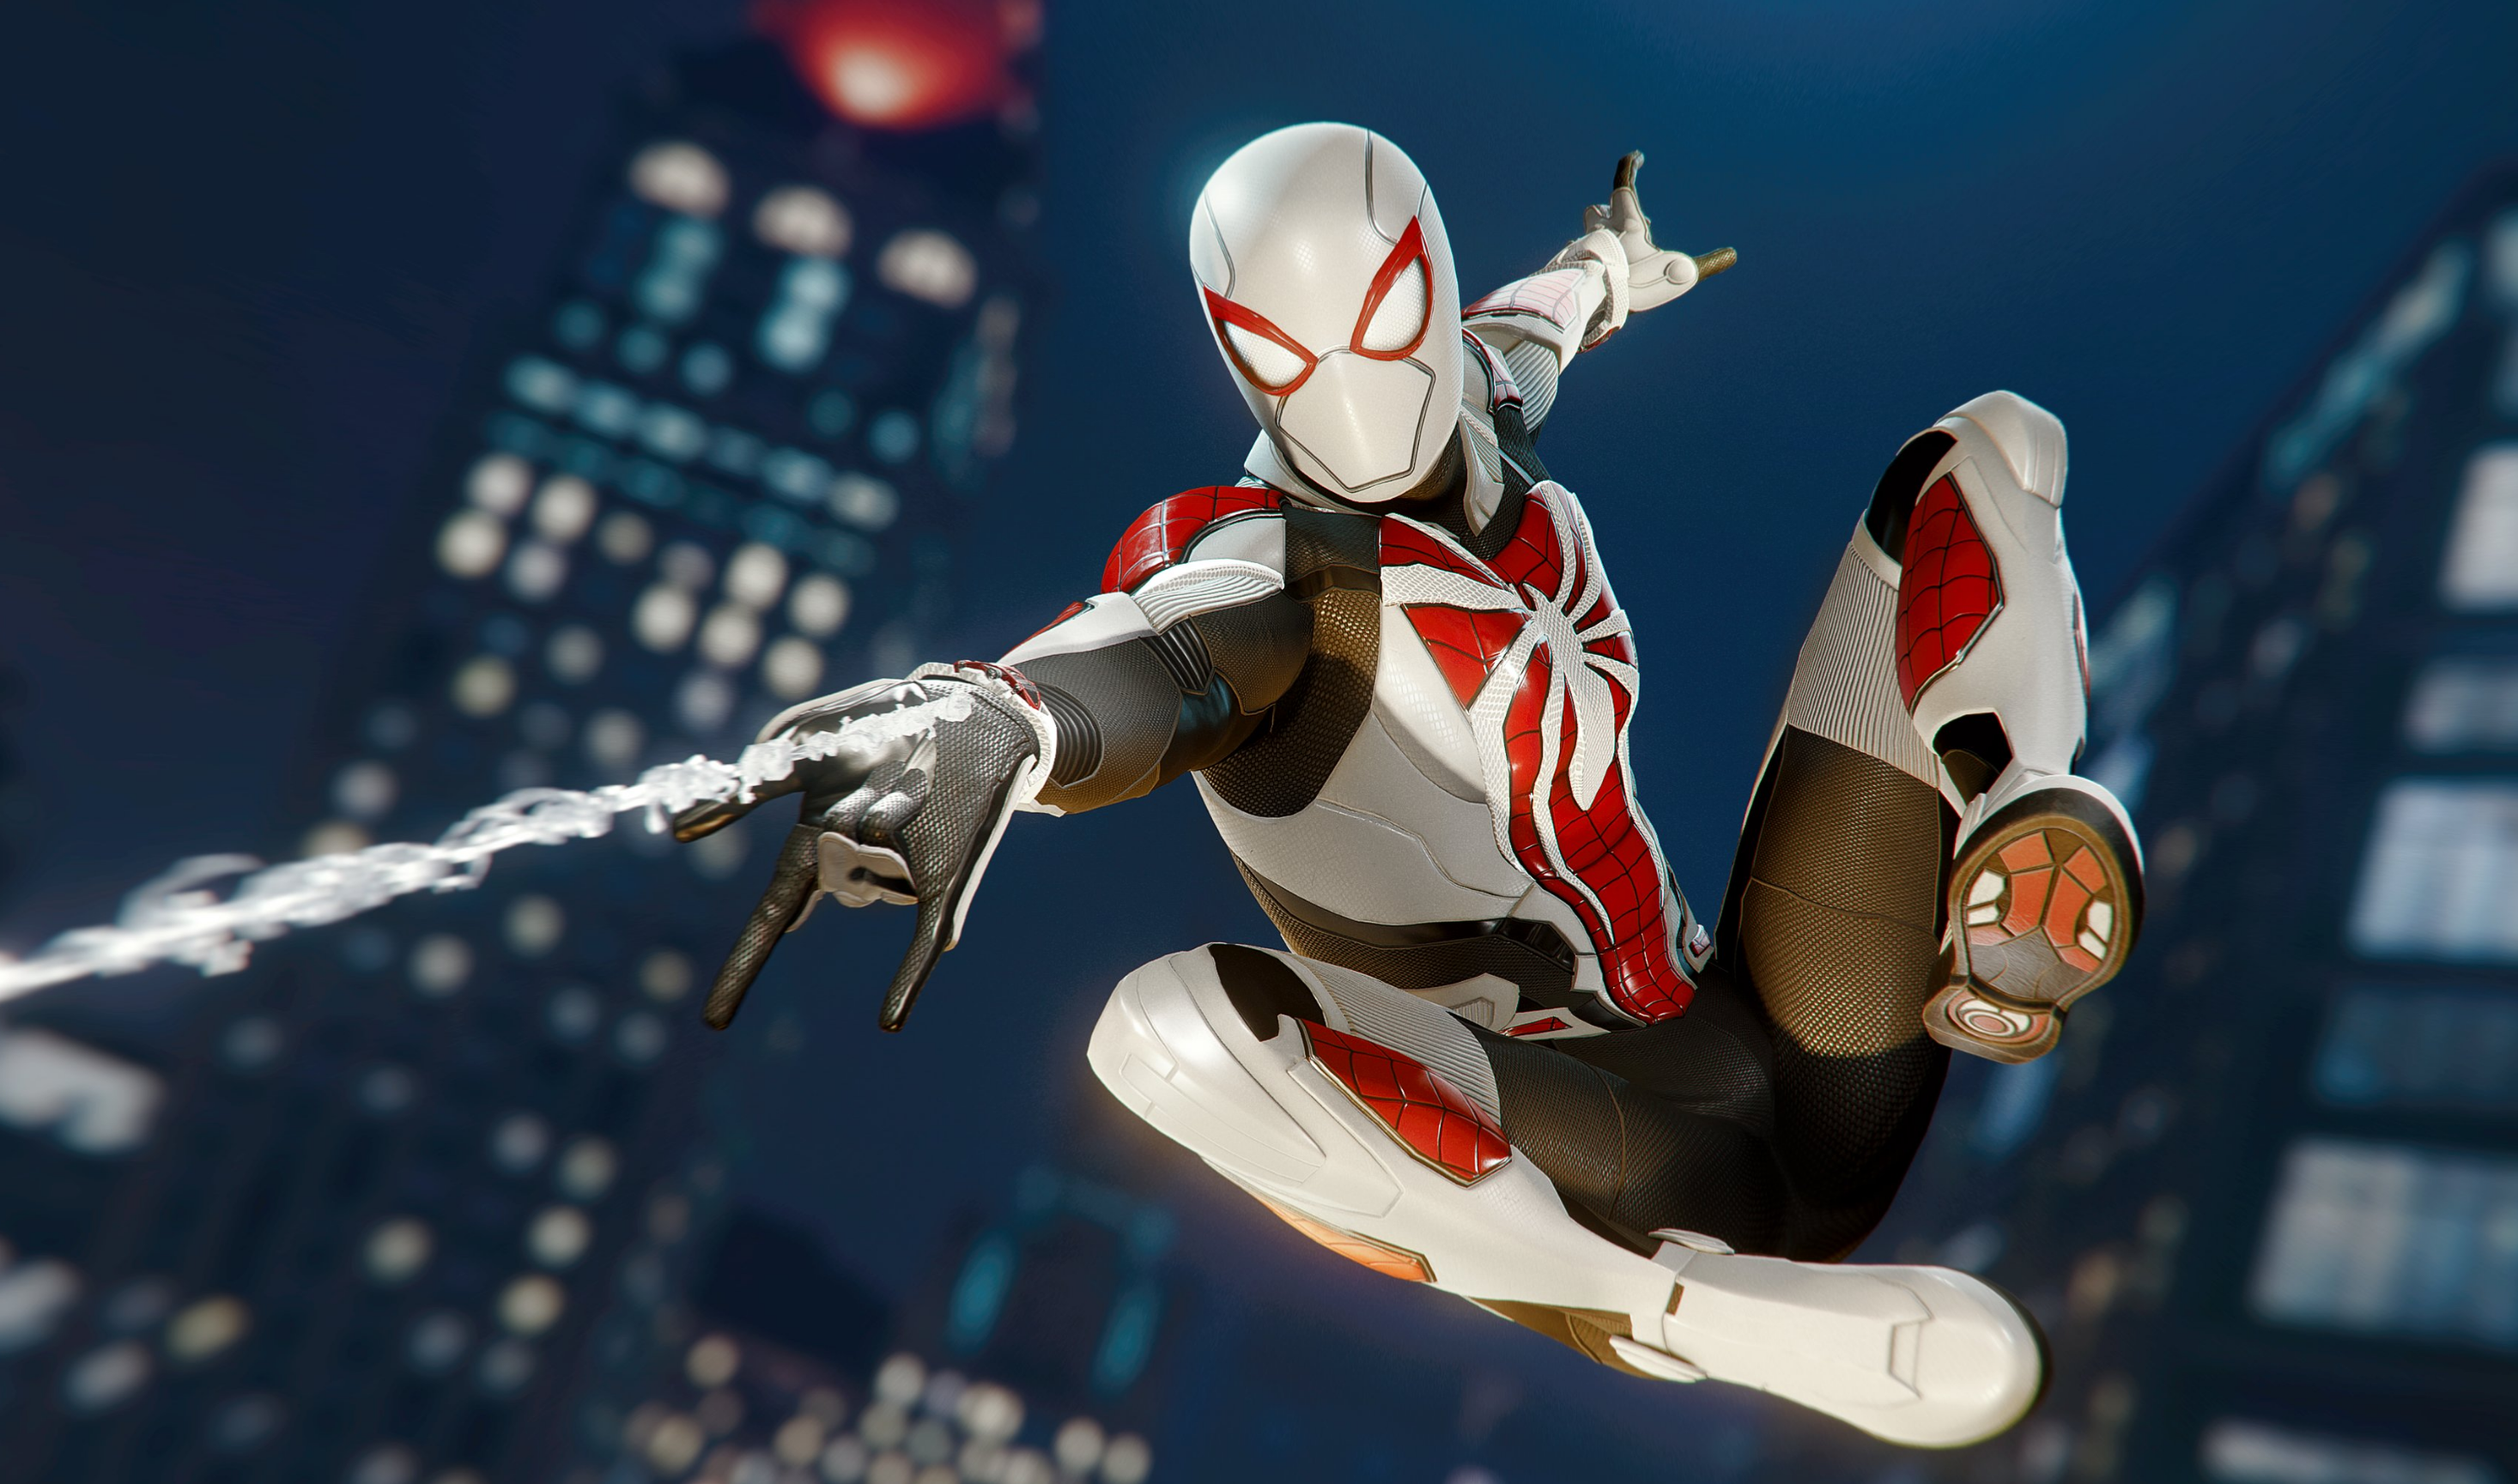 insomniac-will-let-you-transfer-spider-man-ps4-saves-to-spider-man-remastered-on-ps5-in-thanksgiving-update